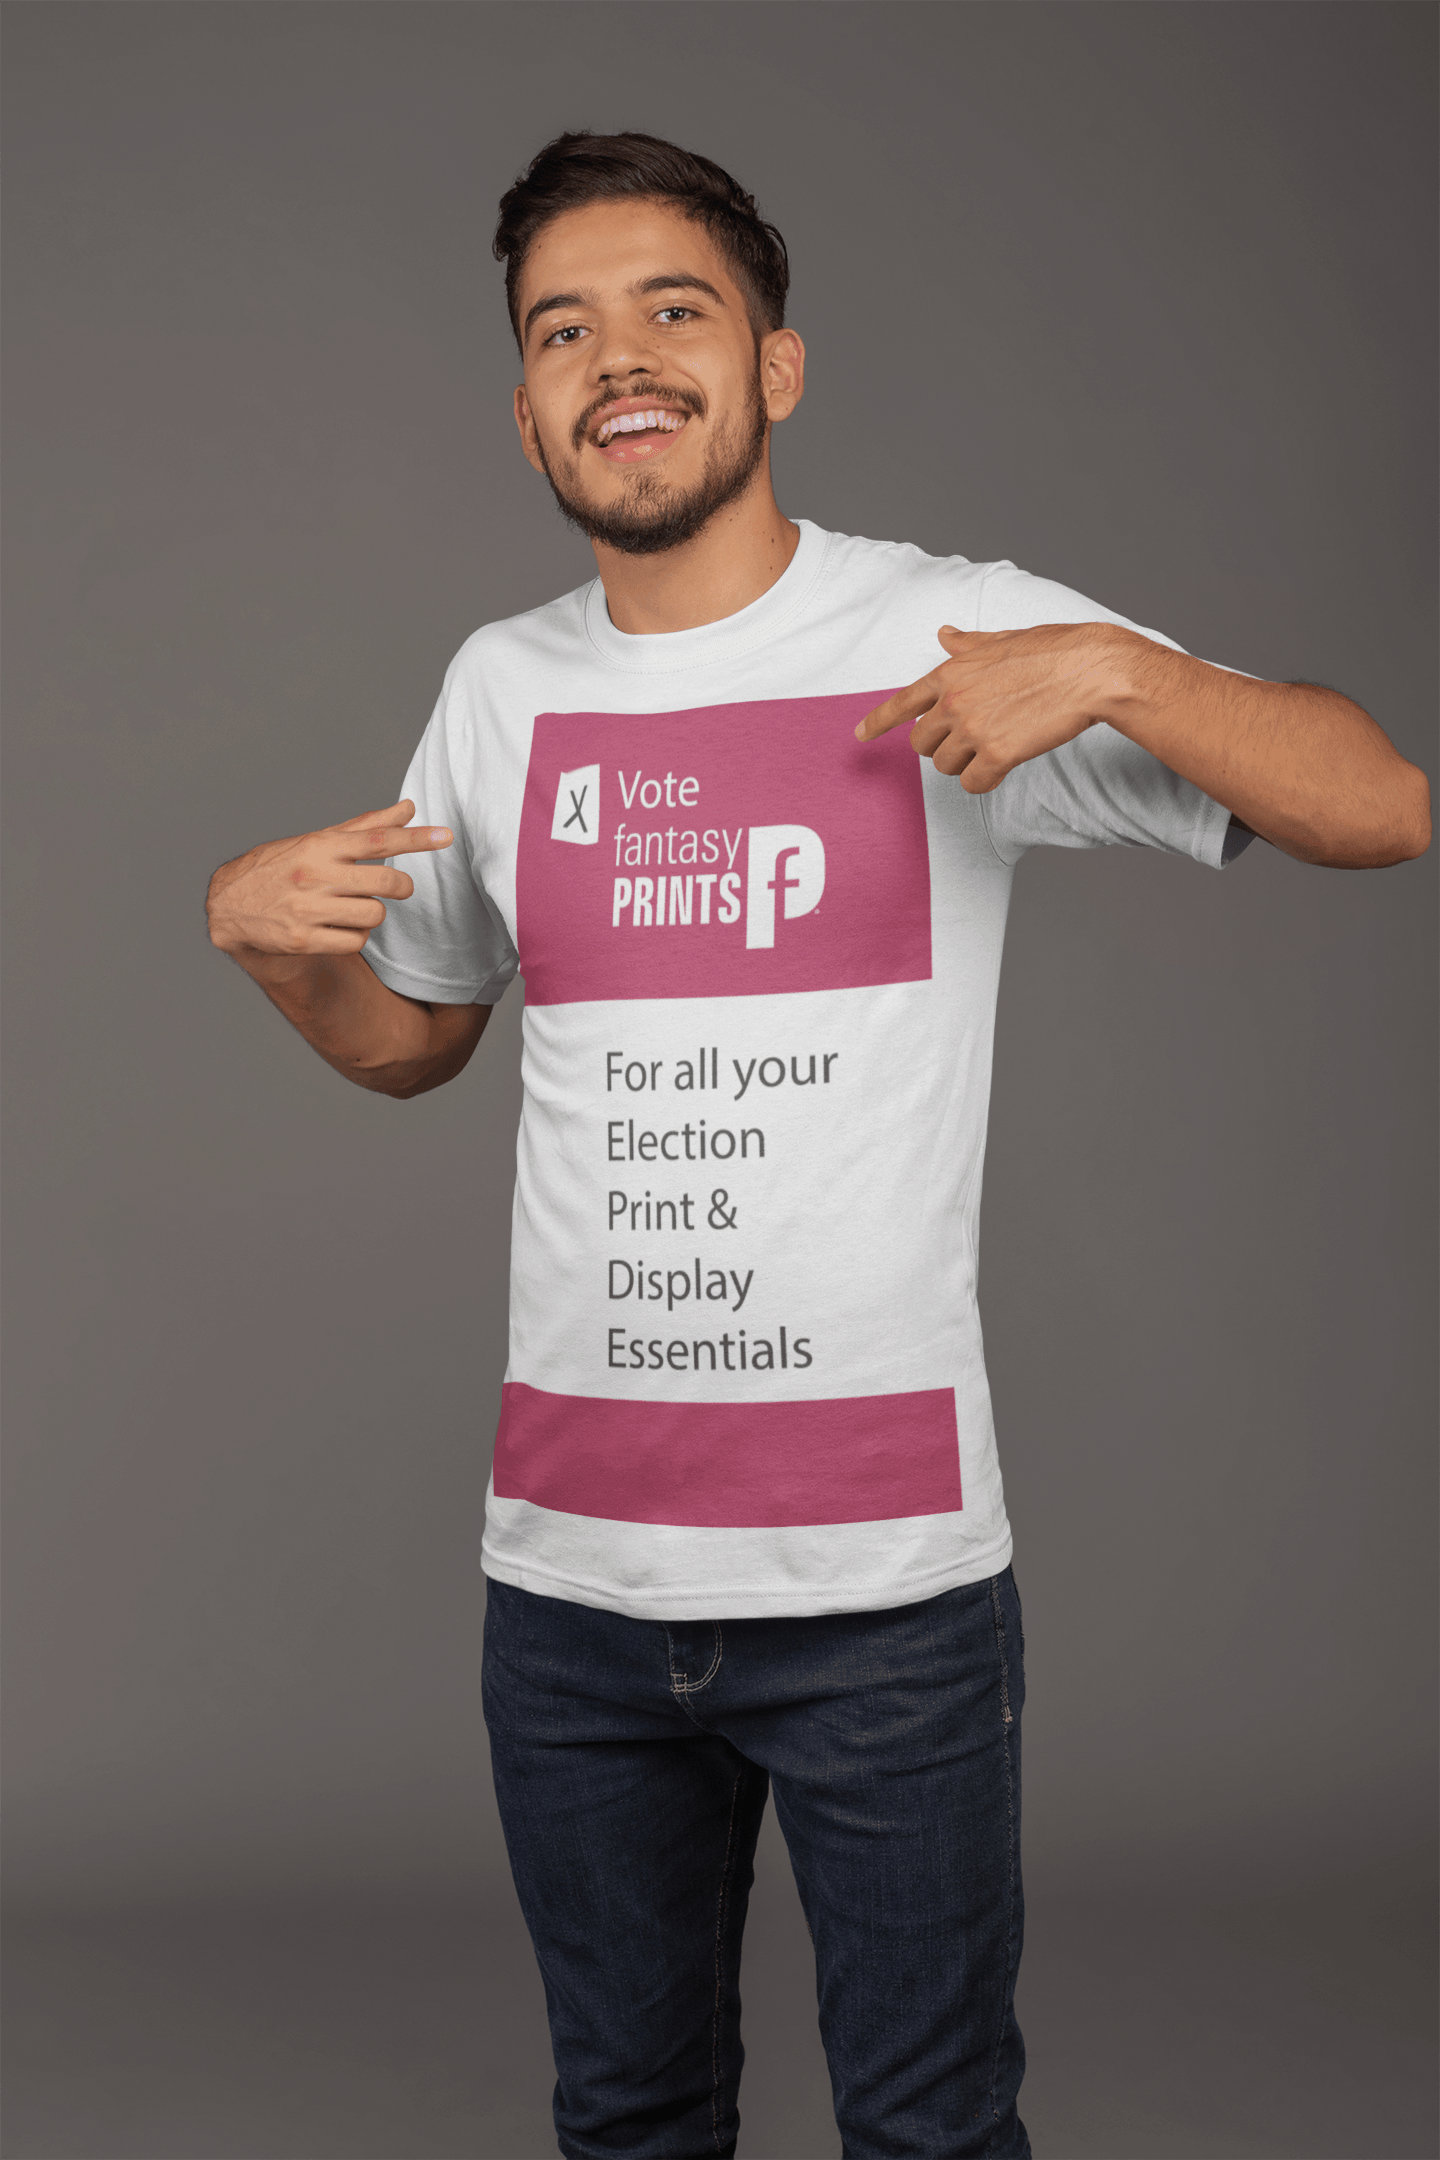 Promotional Customised Printed White T-Shirts have anything printed on them!